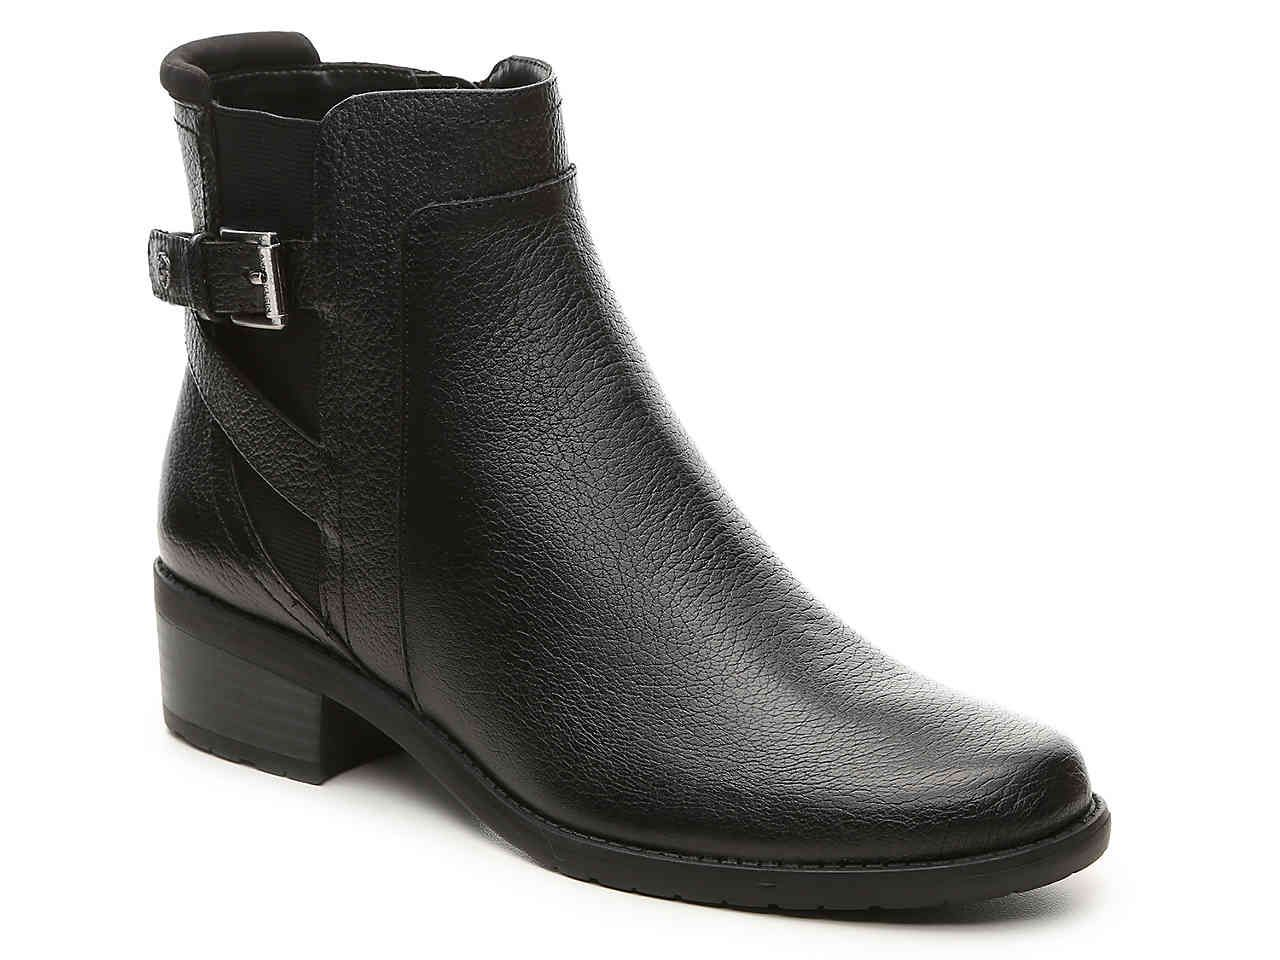 fae7bbb3 Anne Klein Lucille Bootie $79.99 | .Fashion. in 2019 | Boots, Cool ...